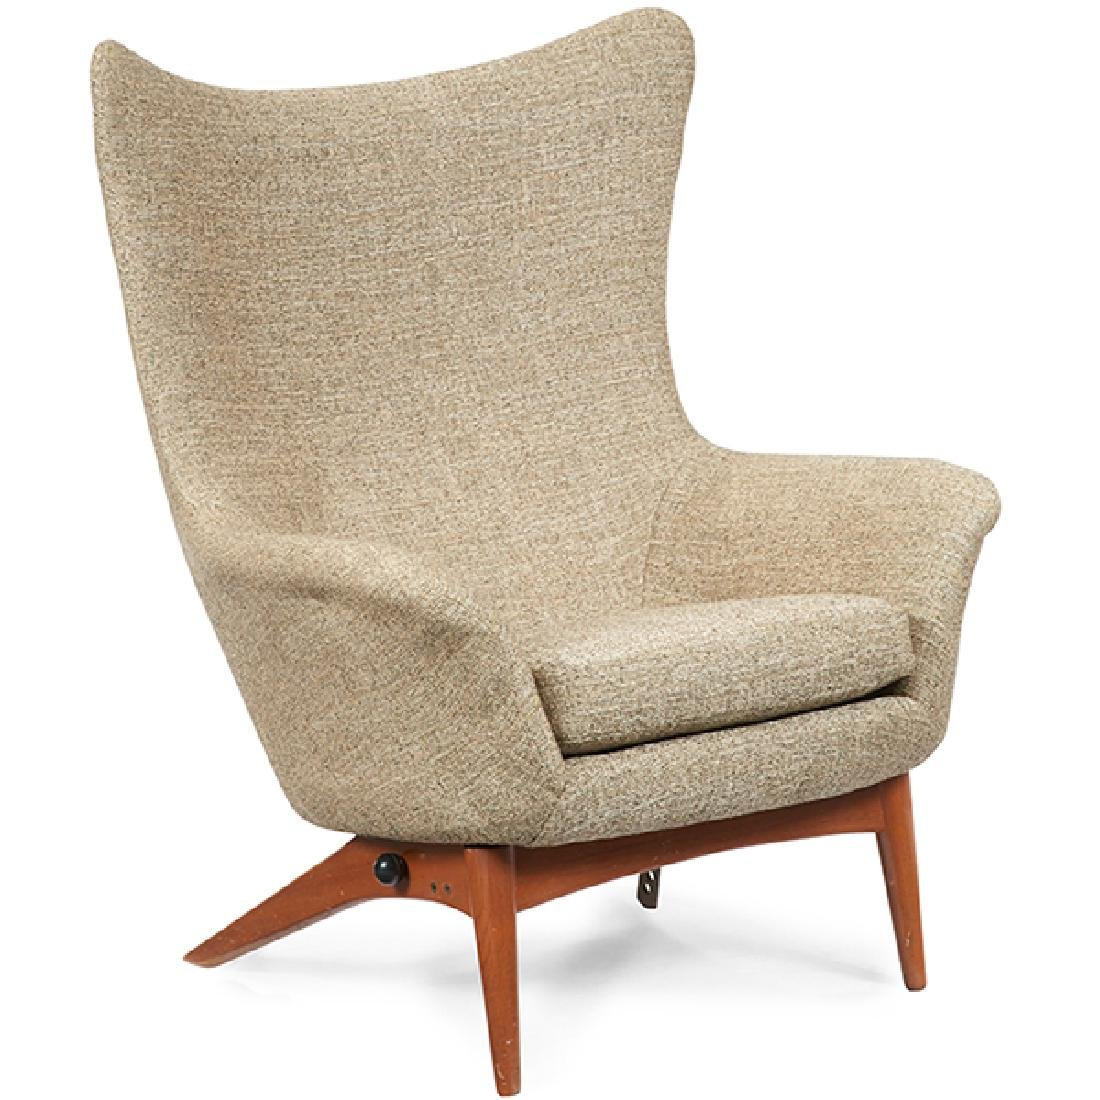 H.W. Klein for Bramin Mobler reclining lounge chair